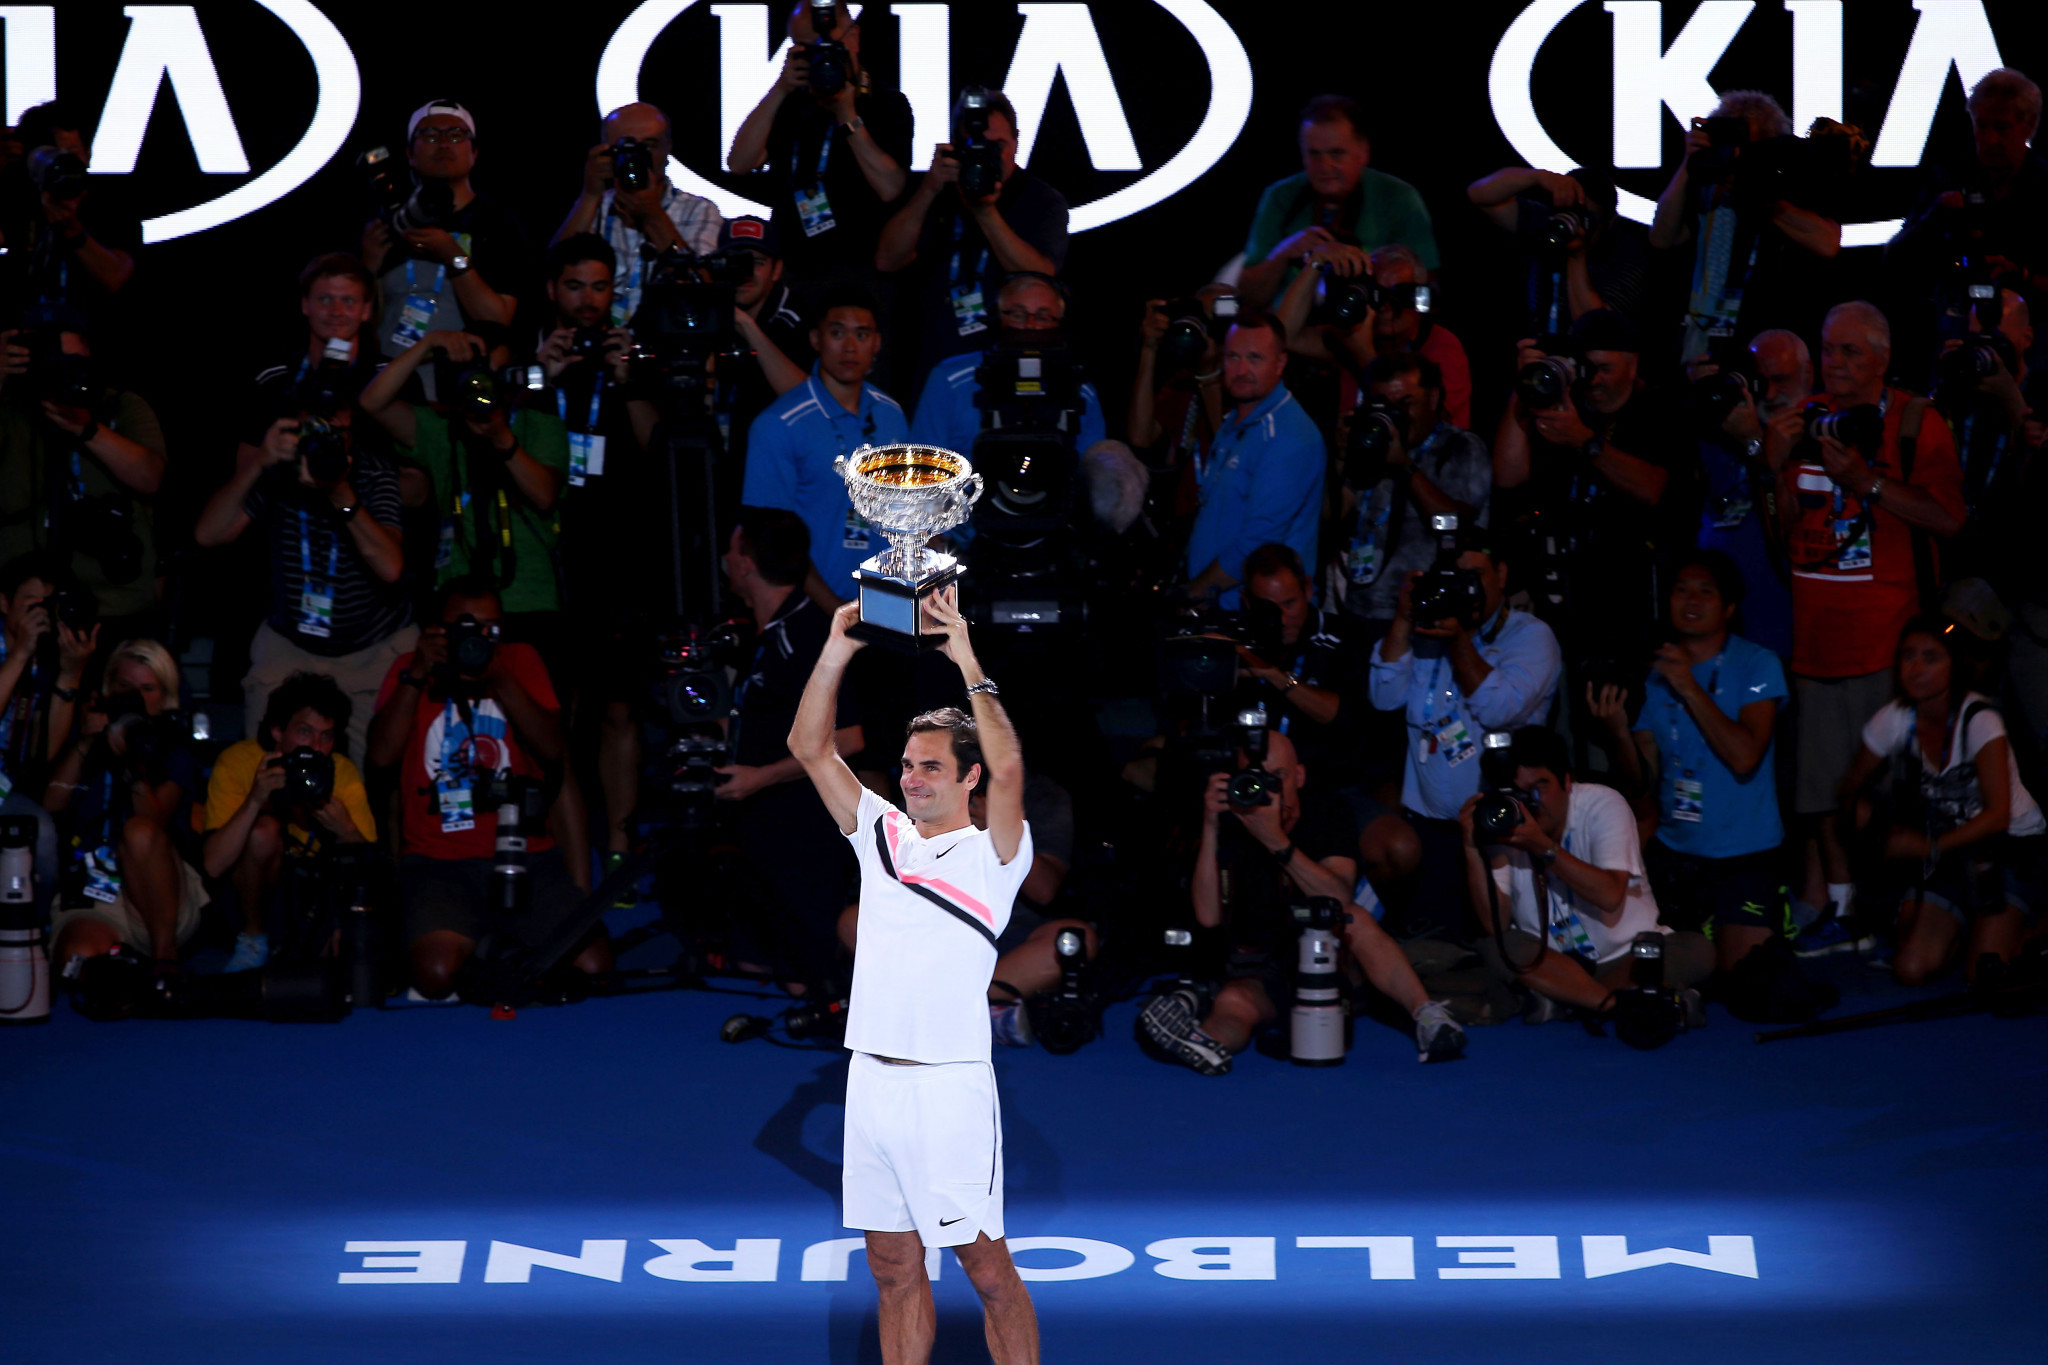 Federer sets up Cilic showdown after Chung retirement